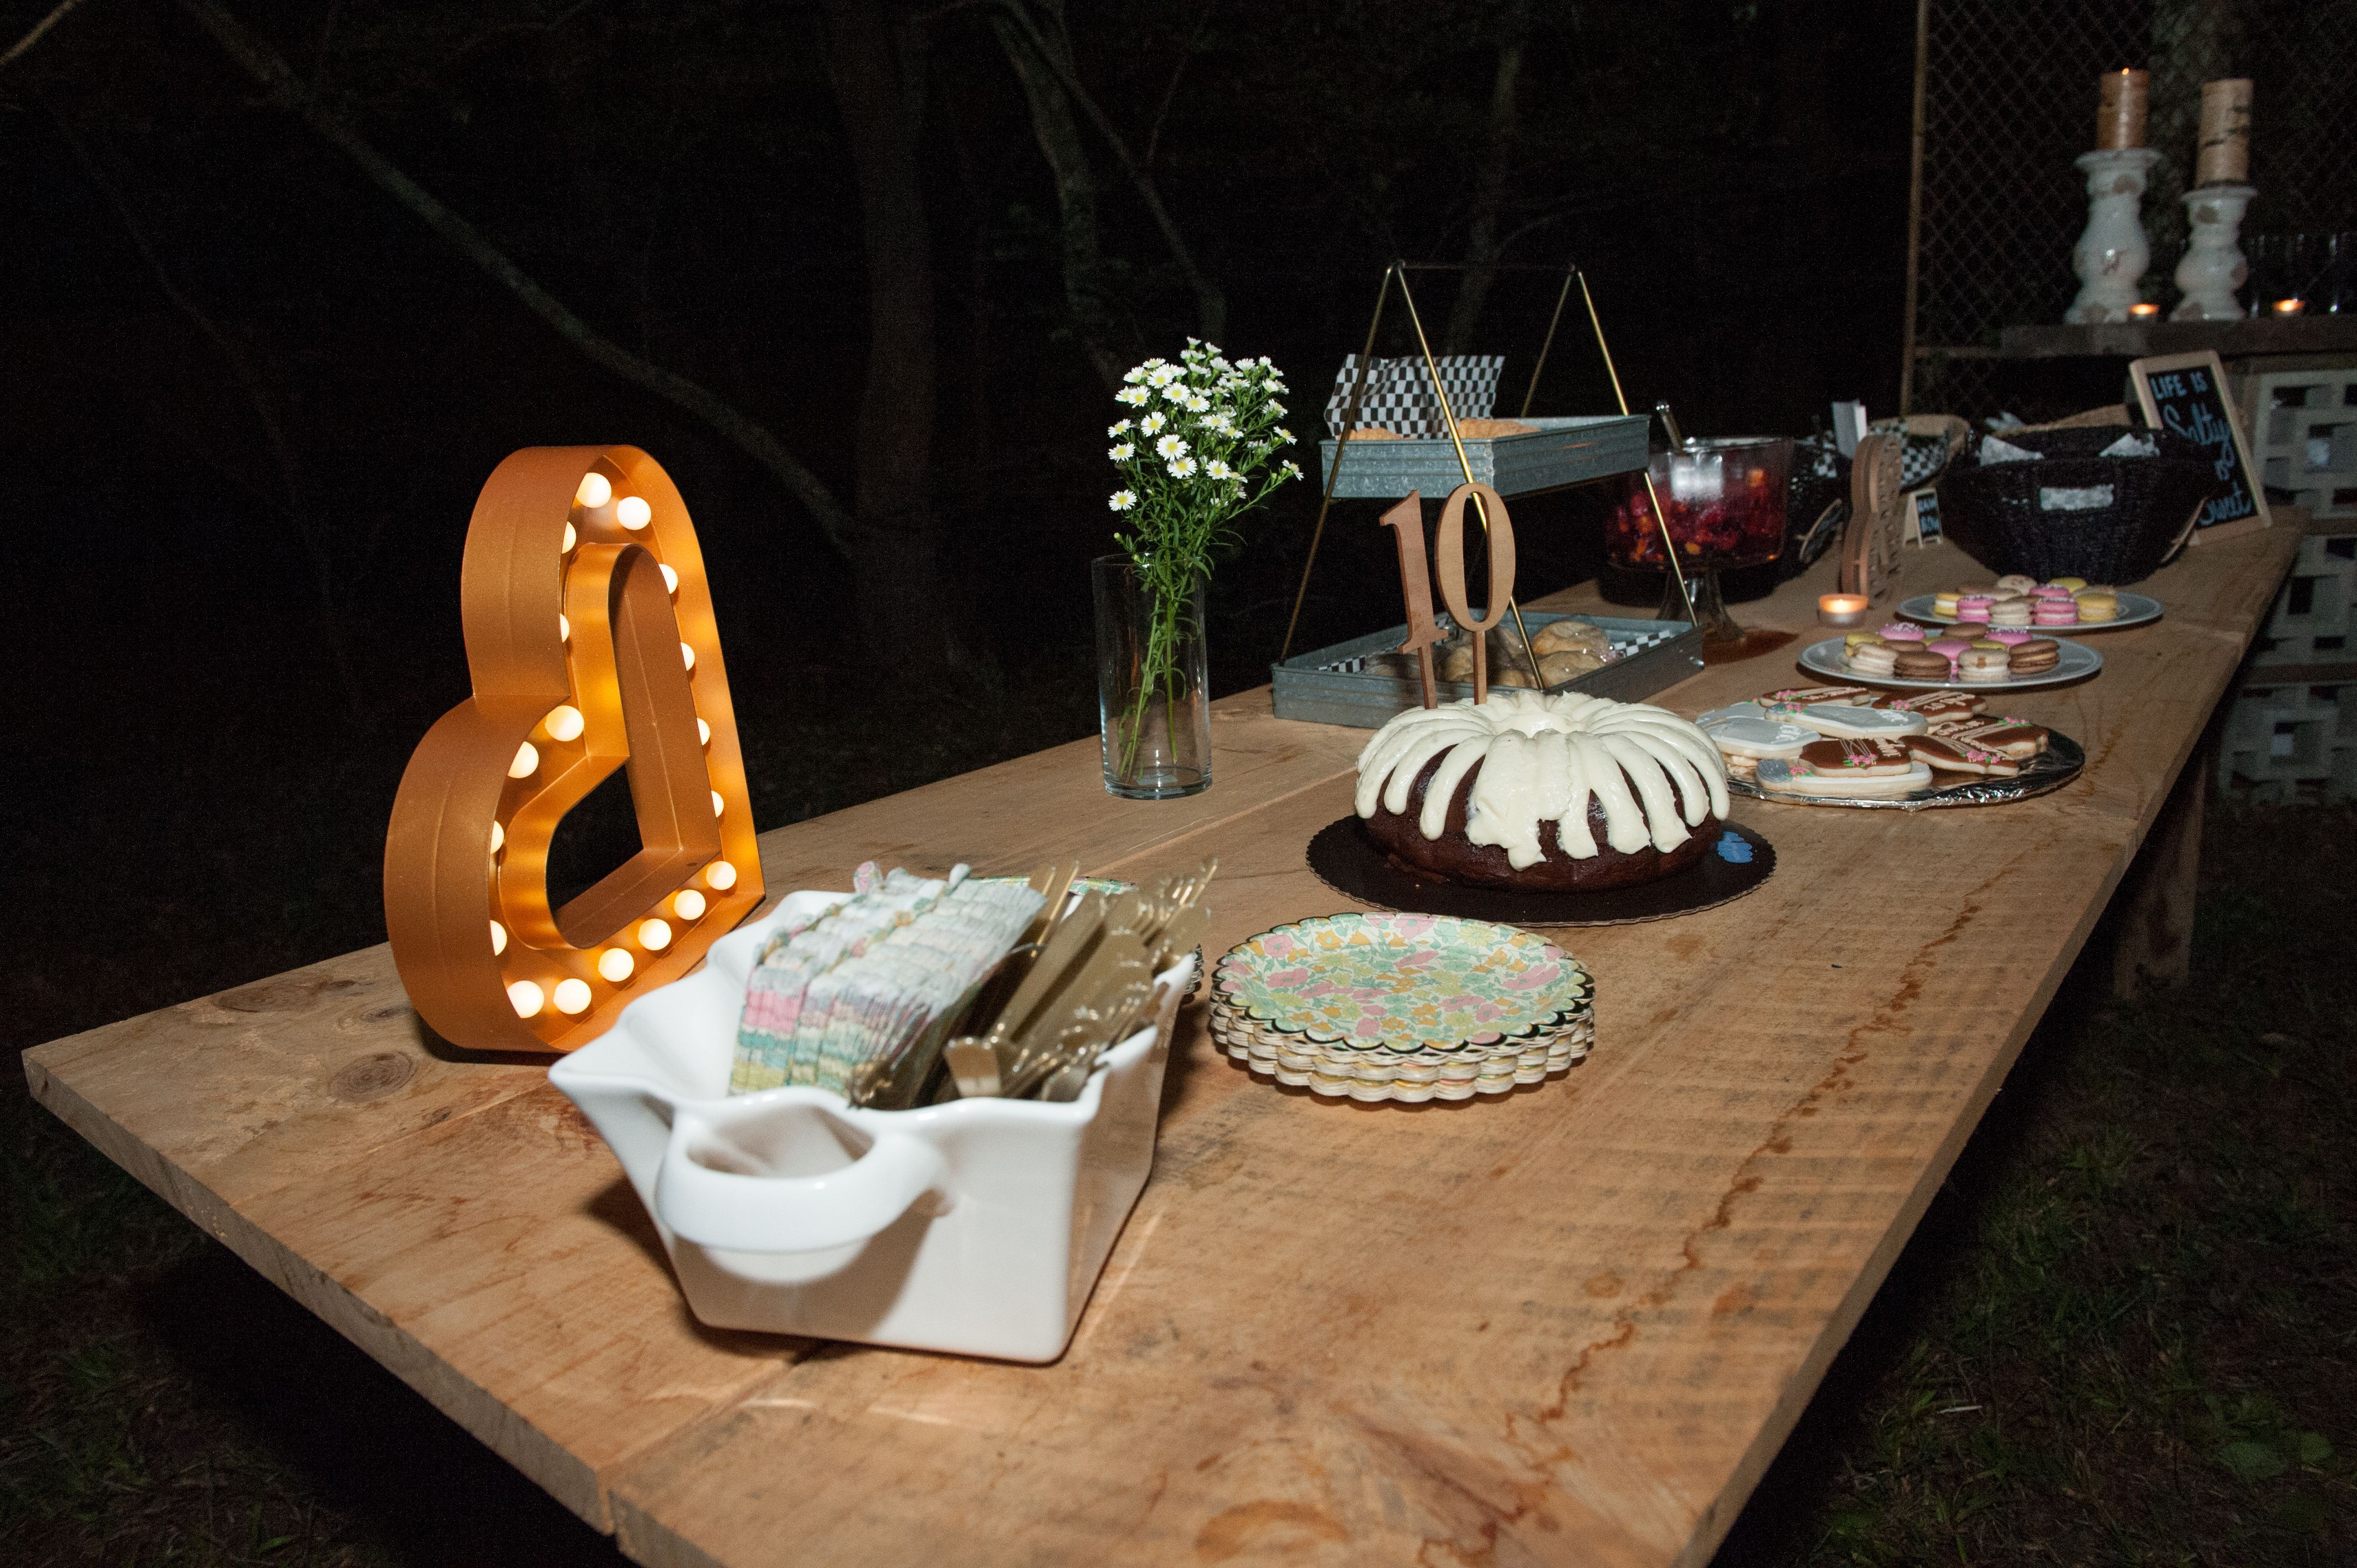 Simple Vow Renewal Dessert Table Rustic Outdoor Wedding Reception Ideas 10 Year In